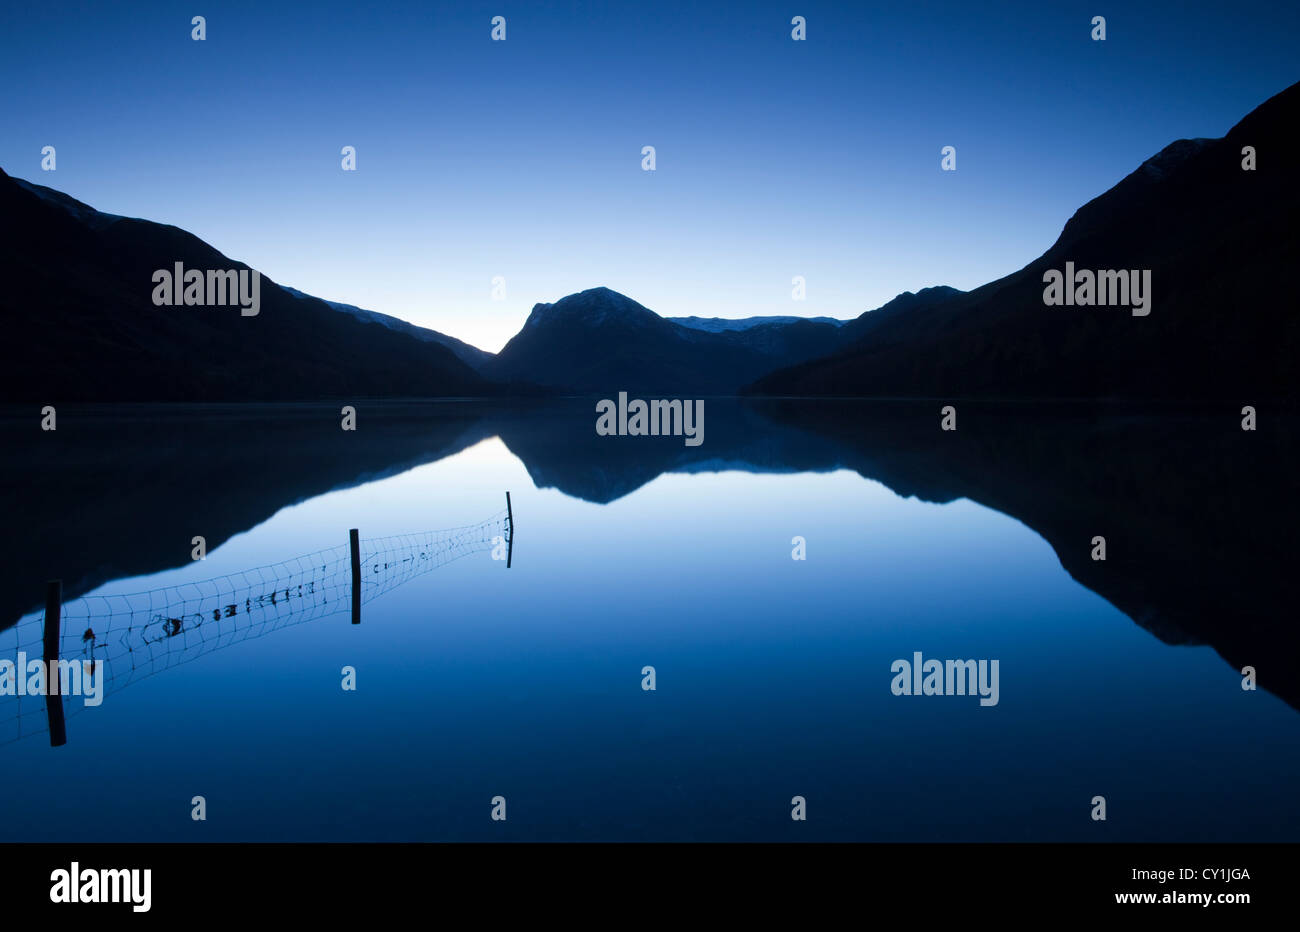 Reflections of mountains in a lake at Buttermere, Lake District, Cumbria, England - Stock Image